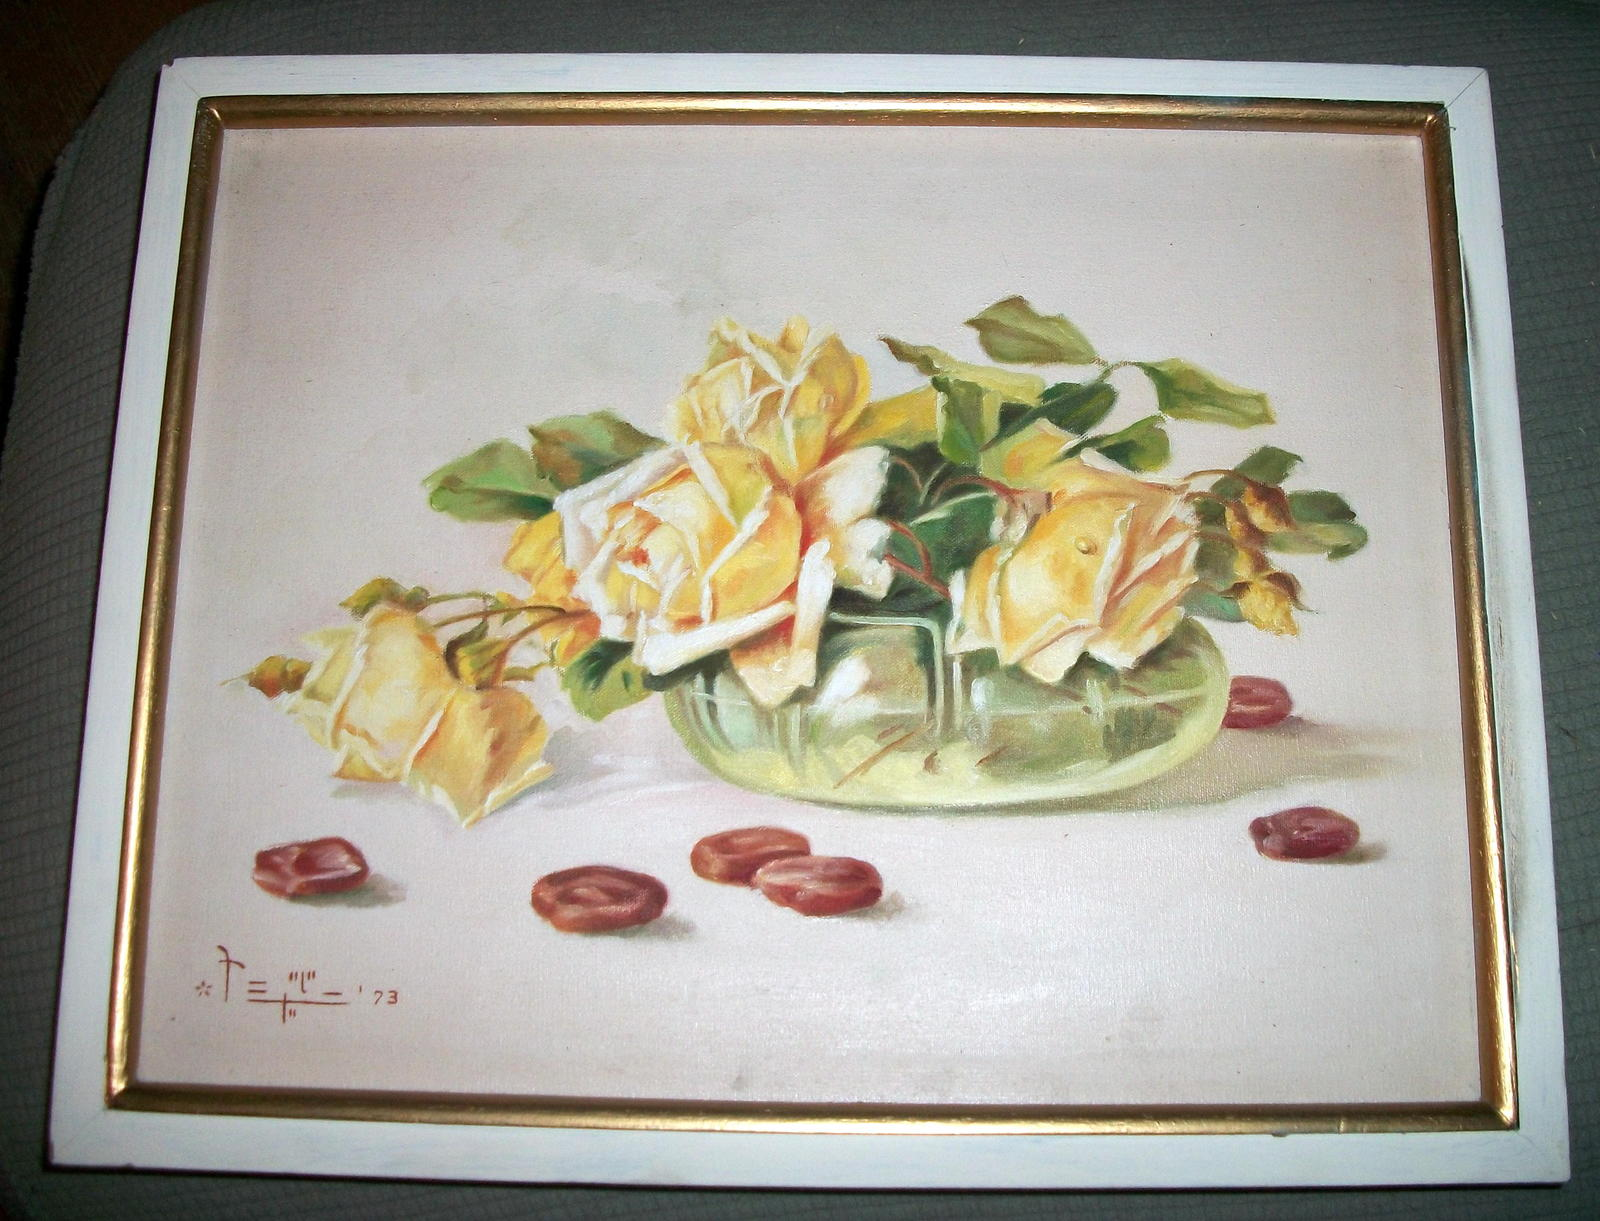 Yellow Roses Still Life Vintage Oil Painting,Signed Artist Pangilinan Reduced image 2